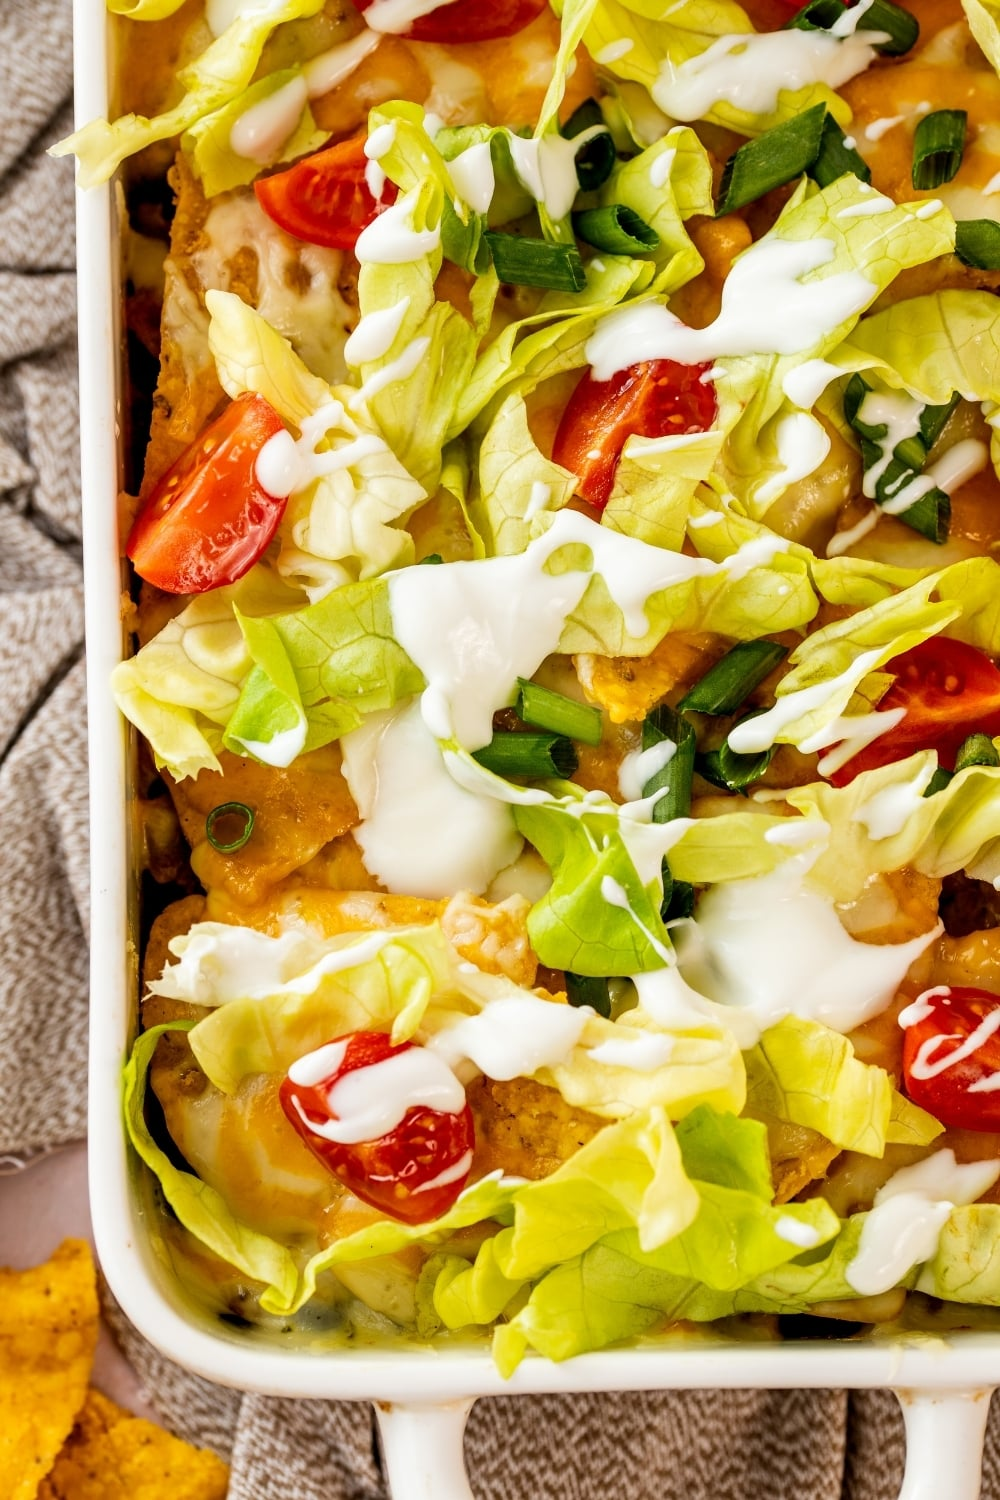 Part of a white casserole dish filled with walking taco casserole. There is lettuce, sour cream, and tomatoes on the top.